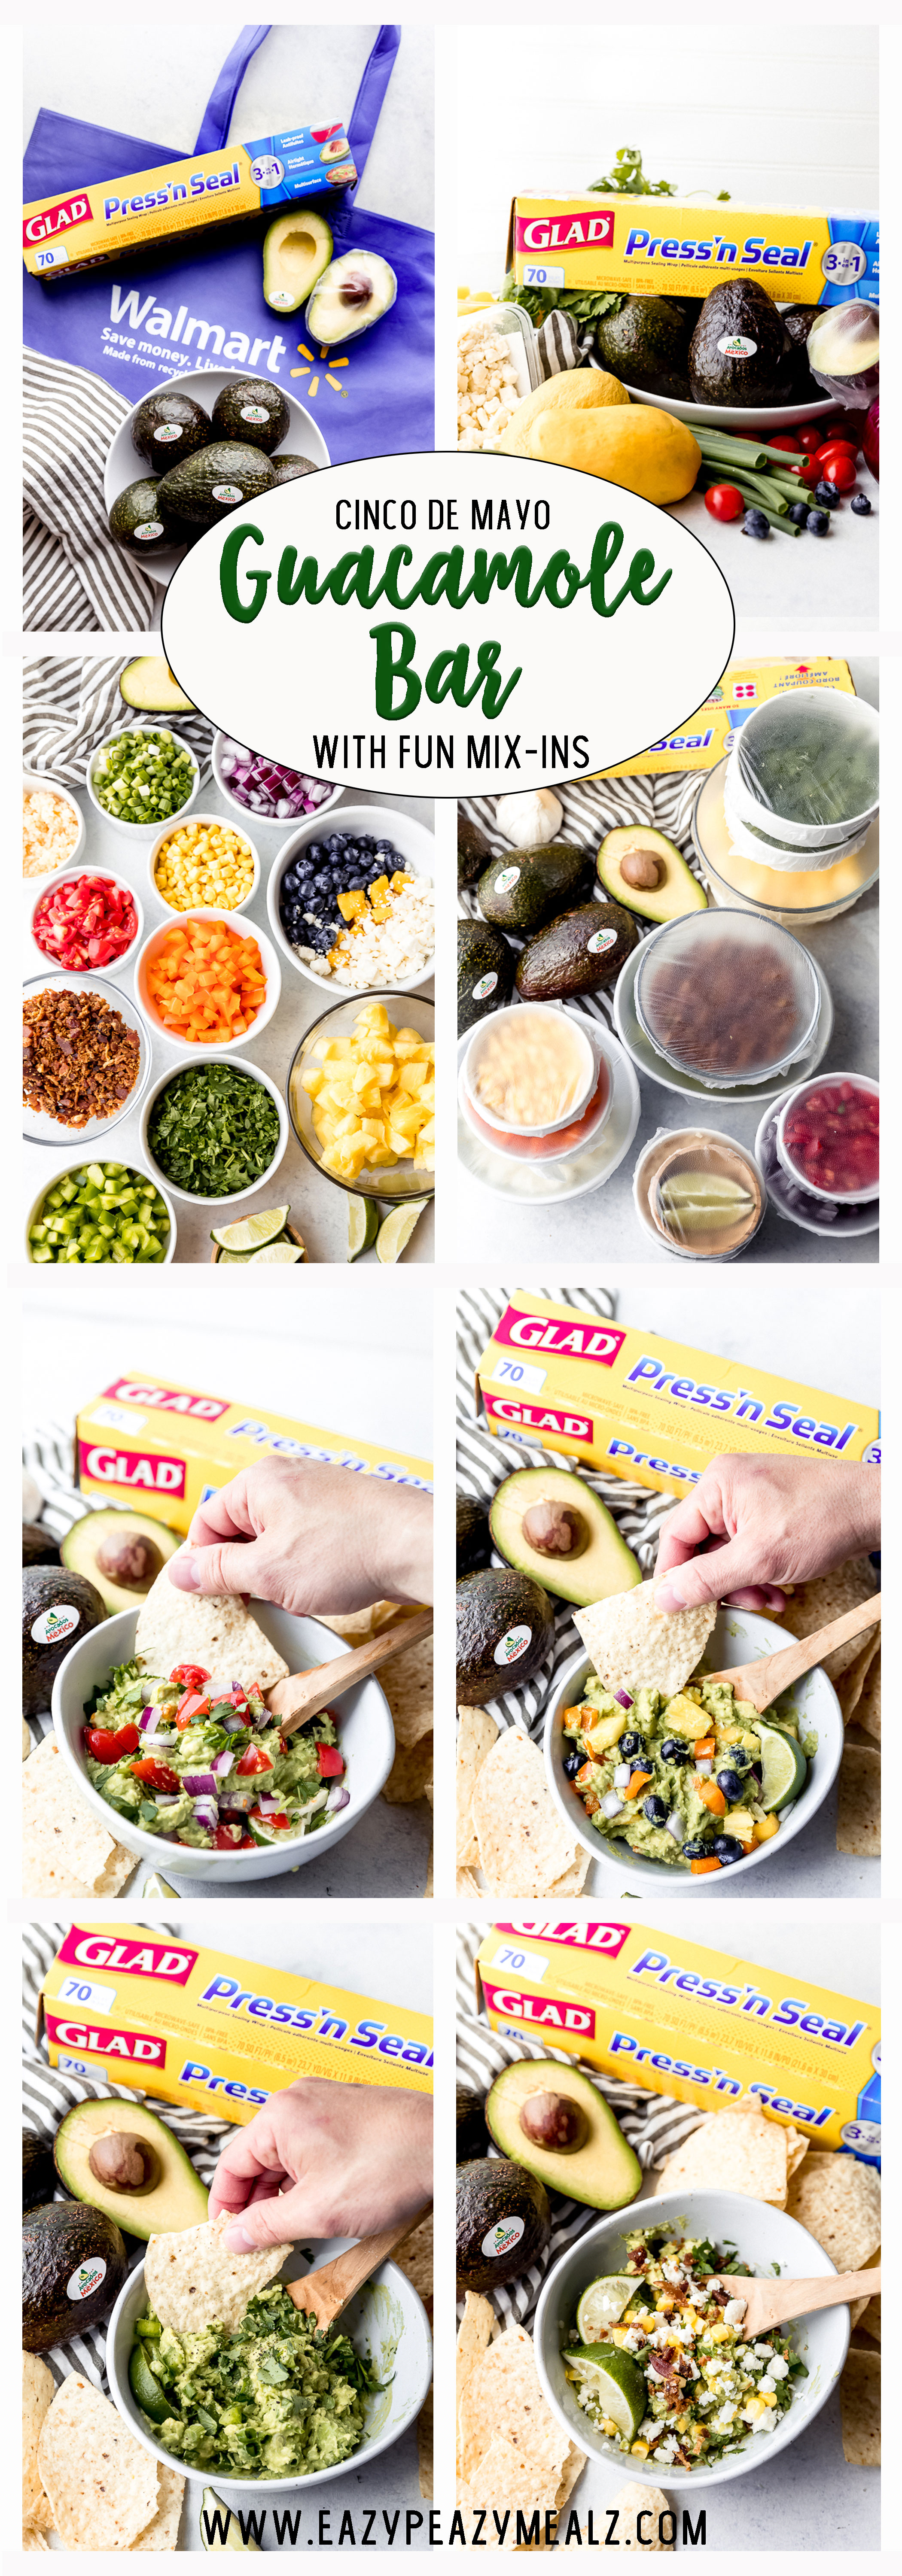 Everything you need to know to make the perfect guacamole bar with all the fun mix-ins